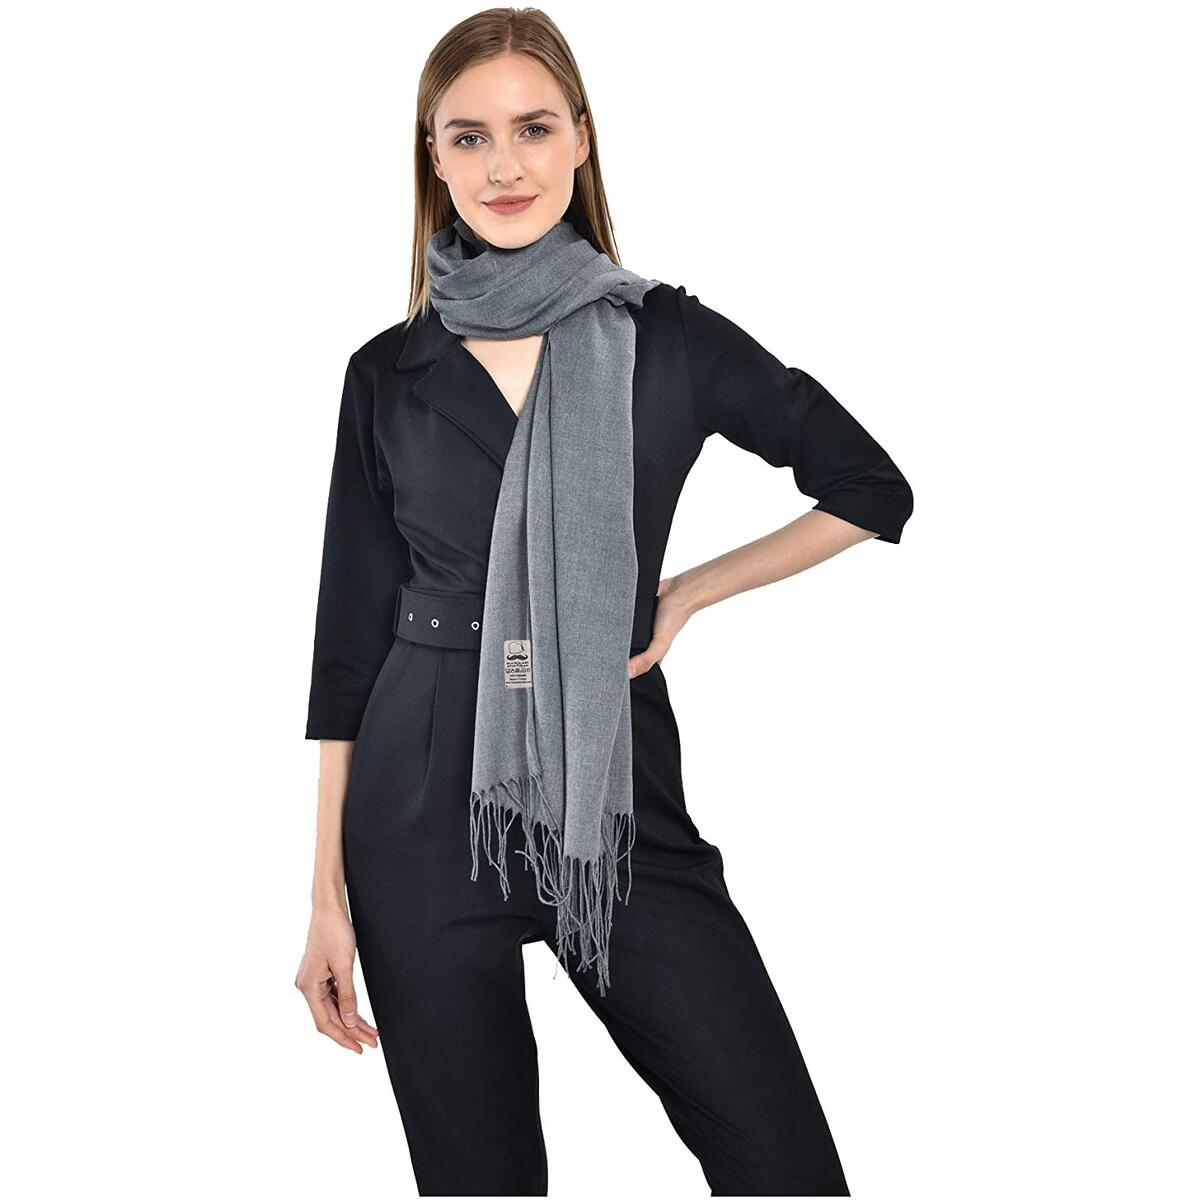 Pashmina Scarfs for Women Shawls and Wraps Soft Lightweight (Gray)